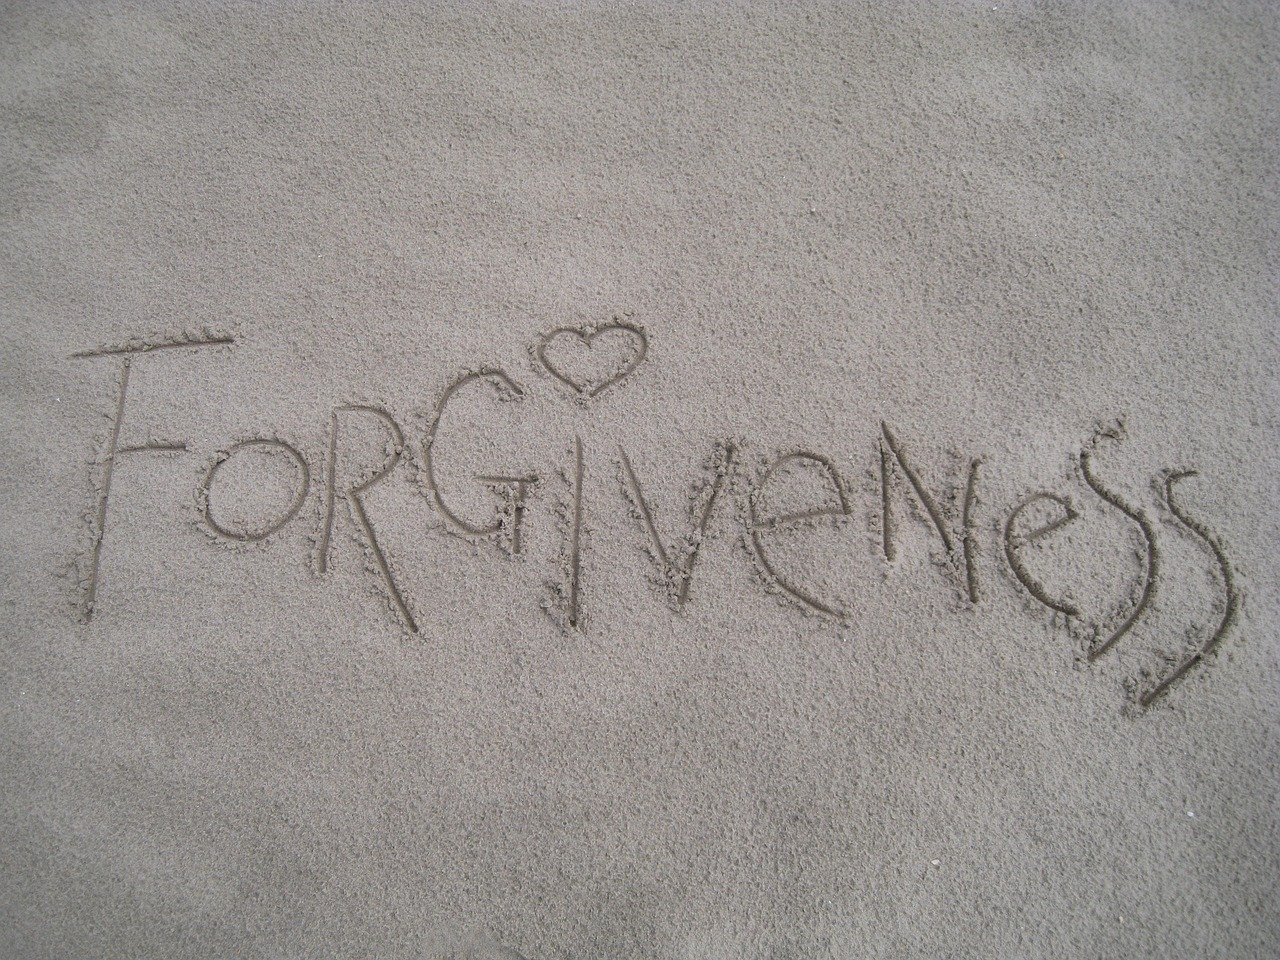 Stuck in the Past? Here are 7 Ways to Forgive Yourself for Past Mistakes